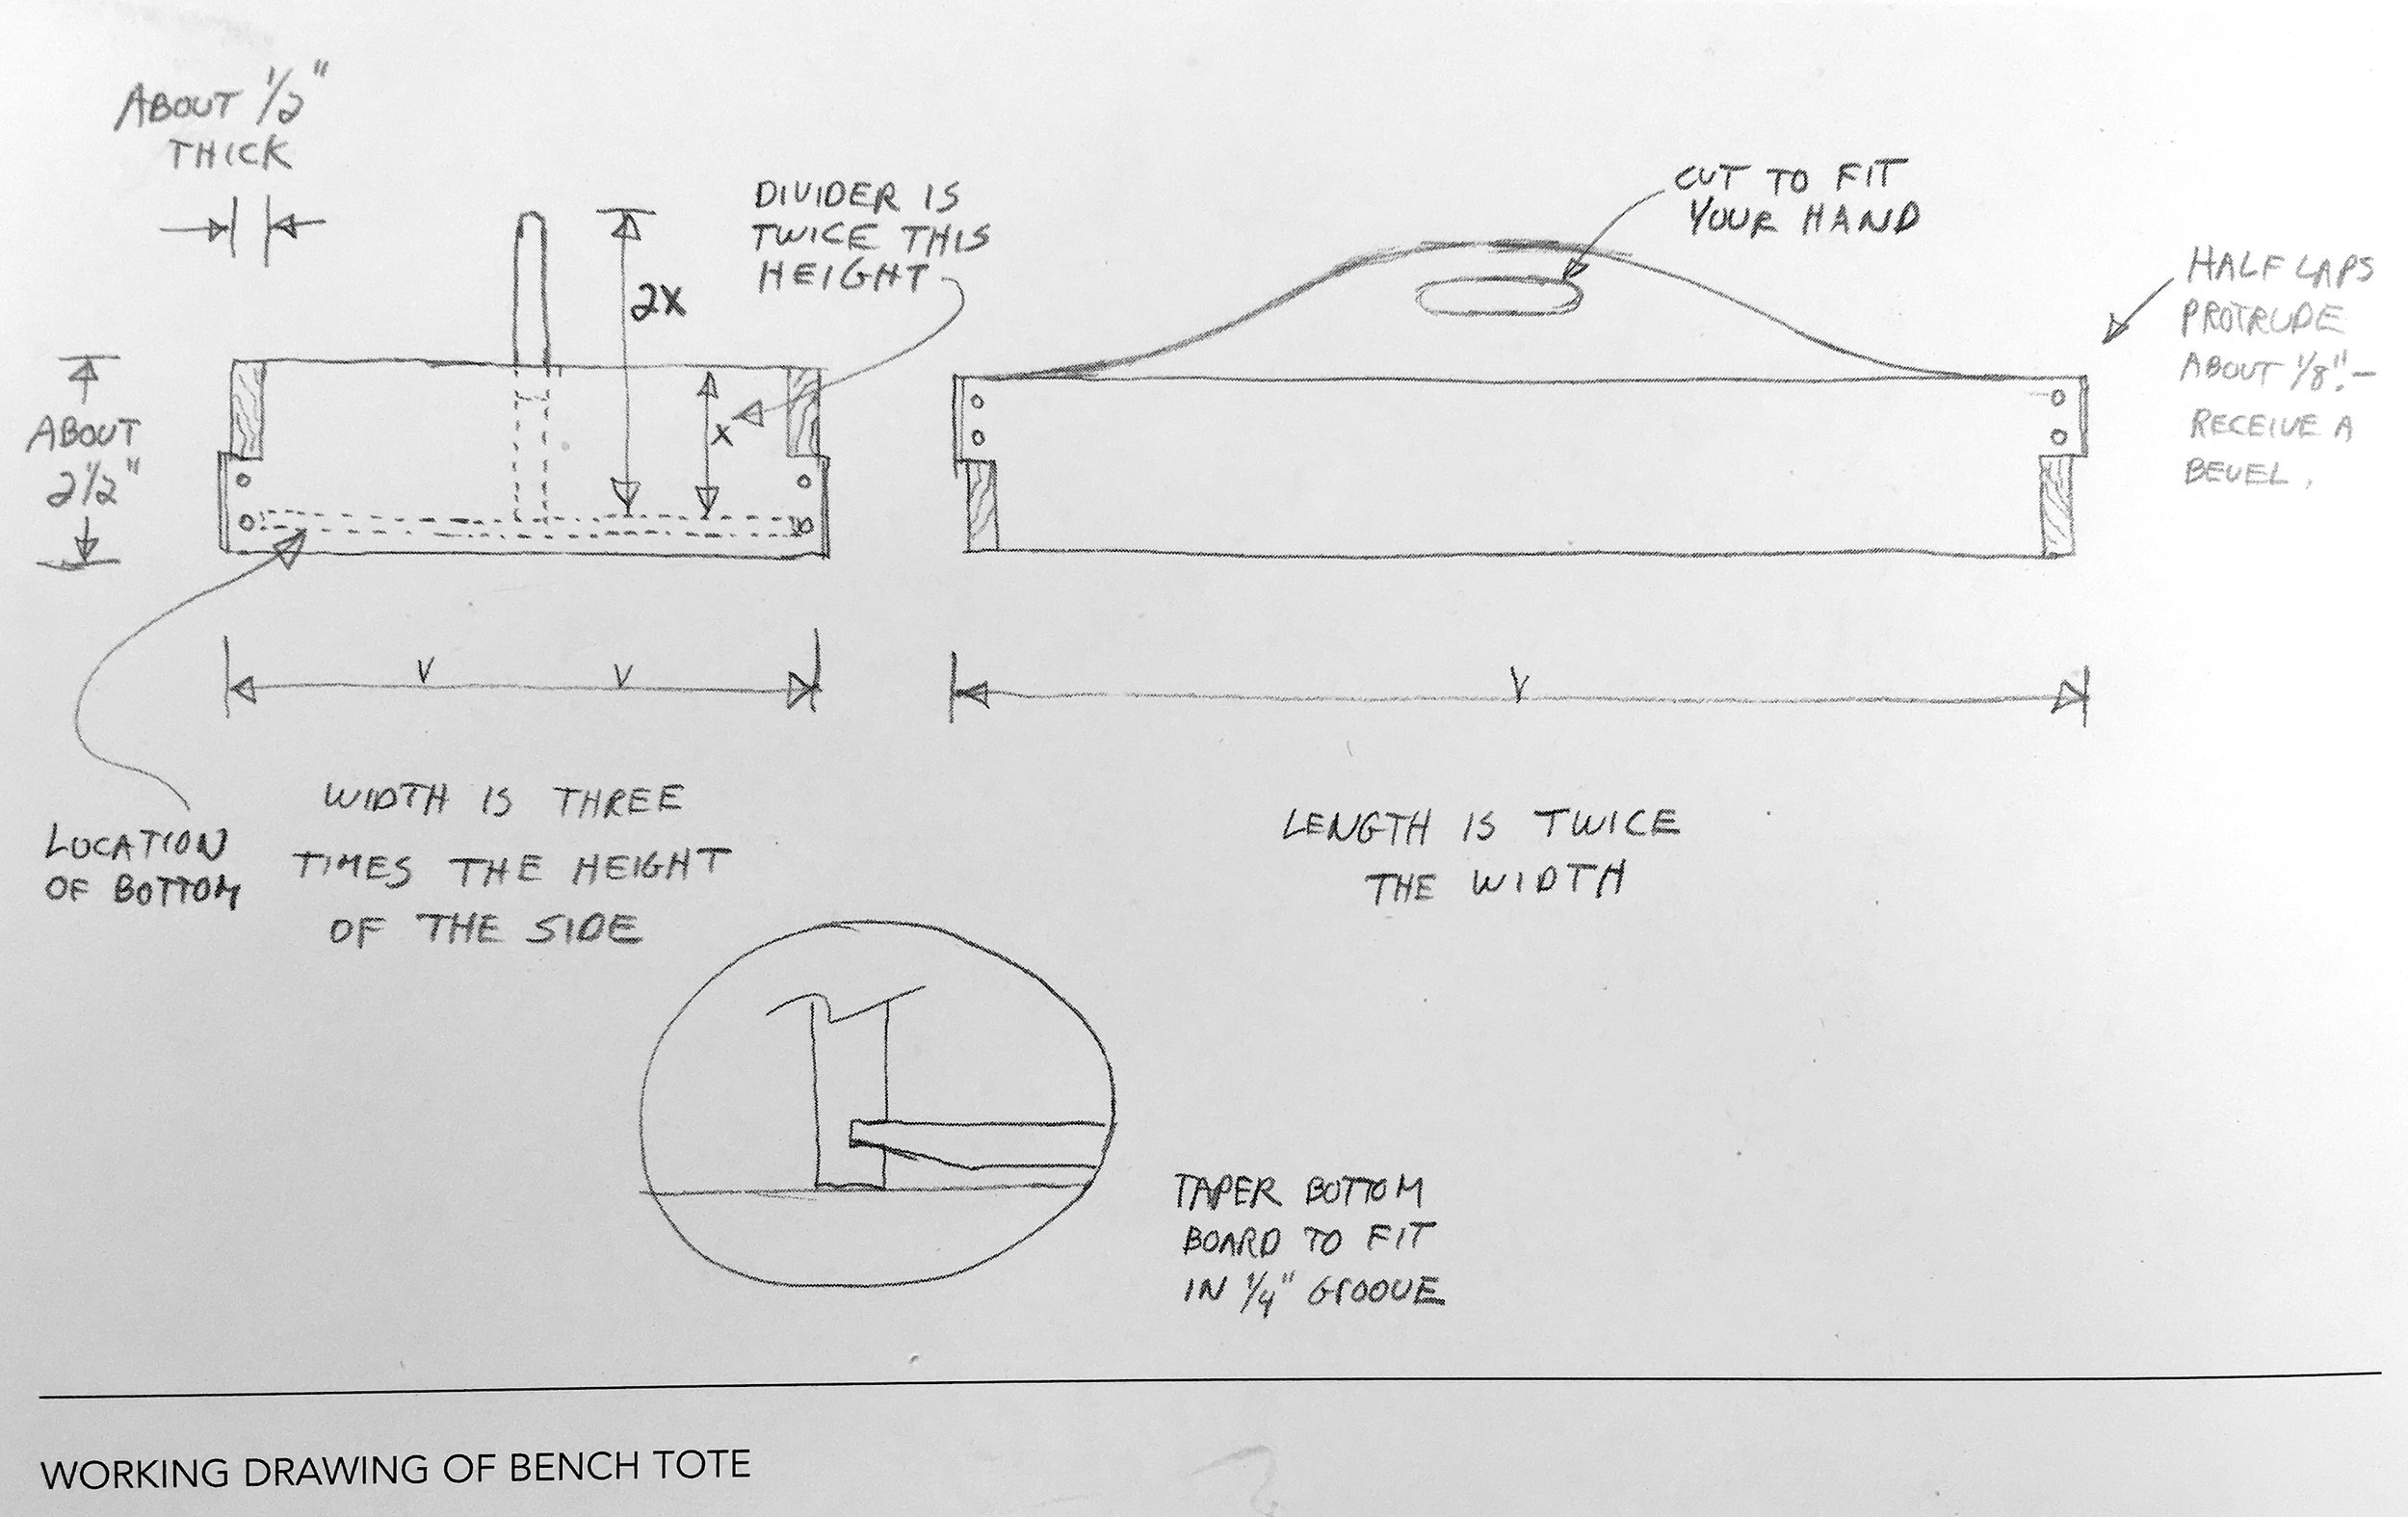 Drawing is from Jim Tolpin's book The New Traditional Woodworker. I took a week long hand woodworking class with him @   Port Townsend School    or Woodworking and it was life changing! They offer a Women's woodworking class too!